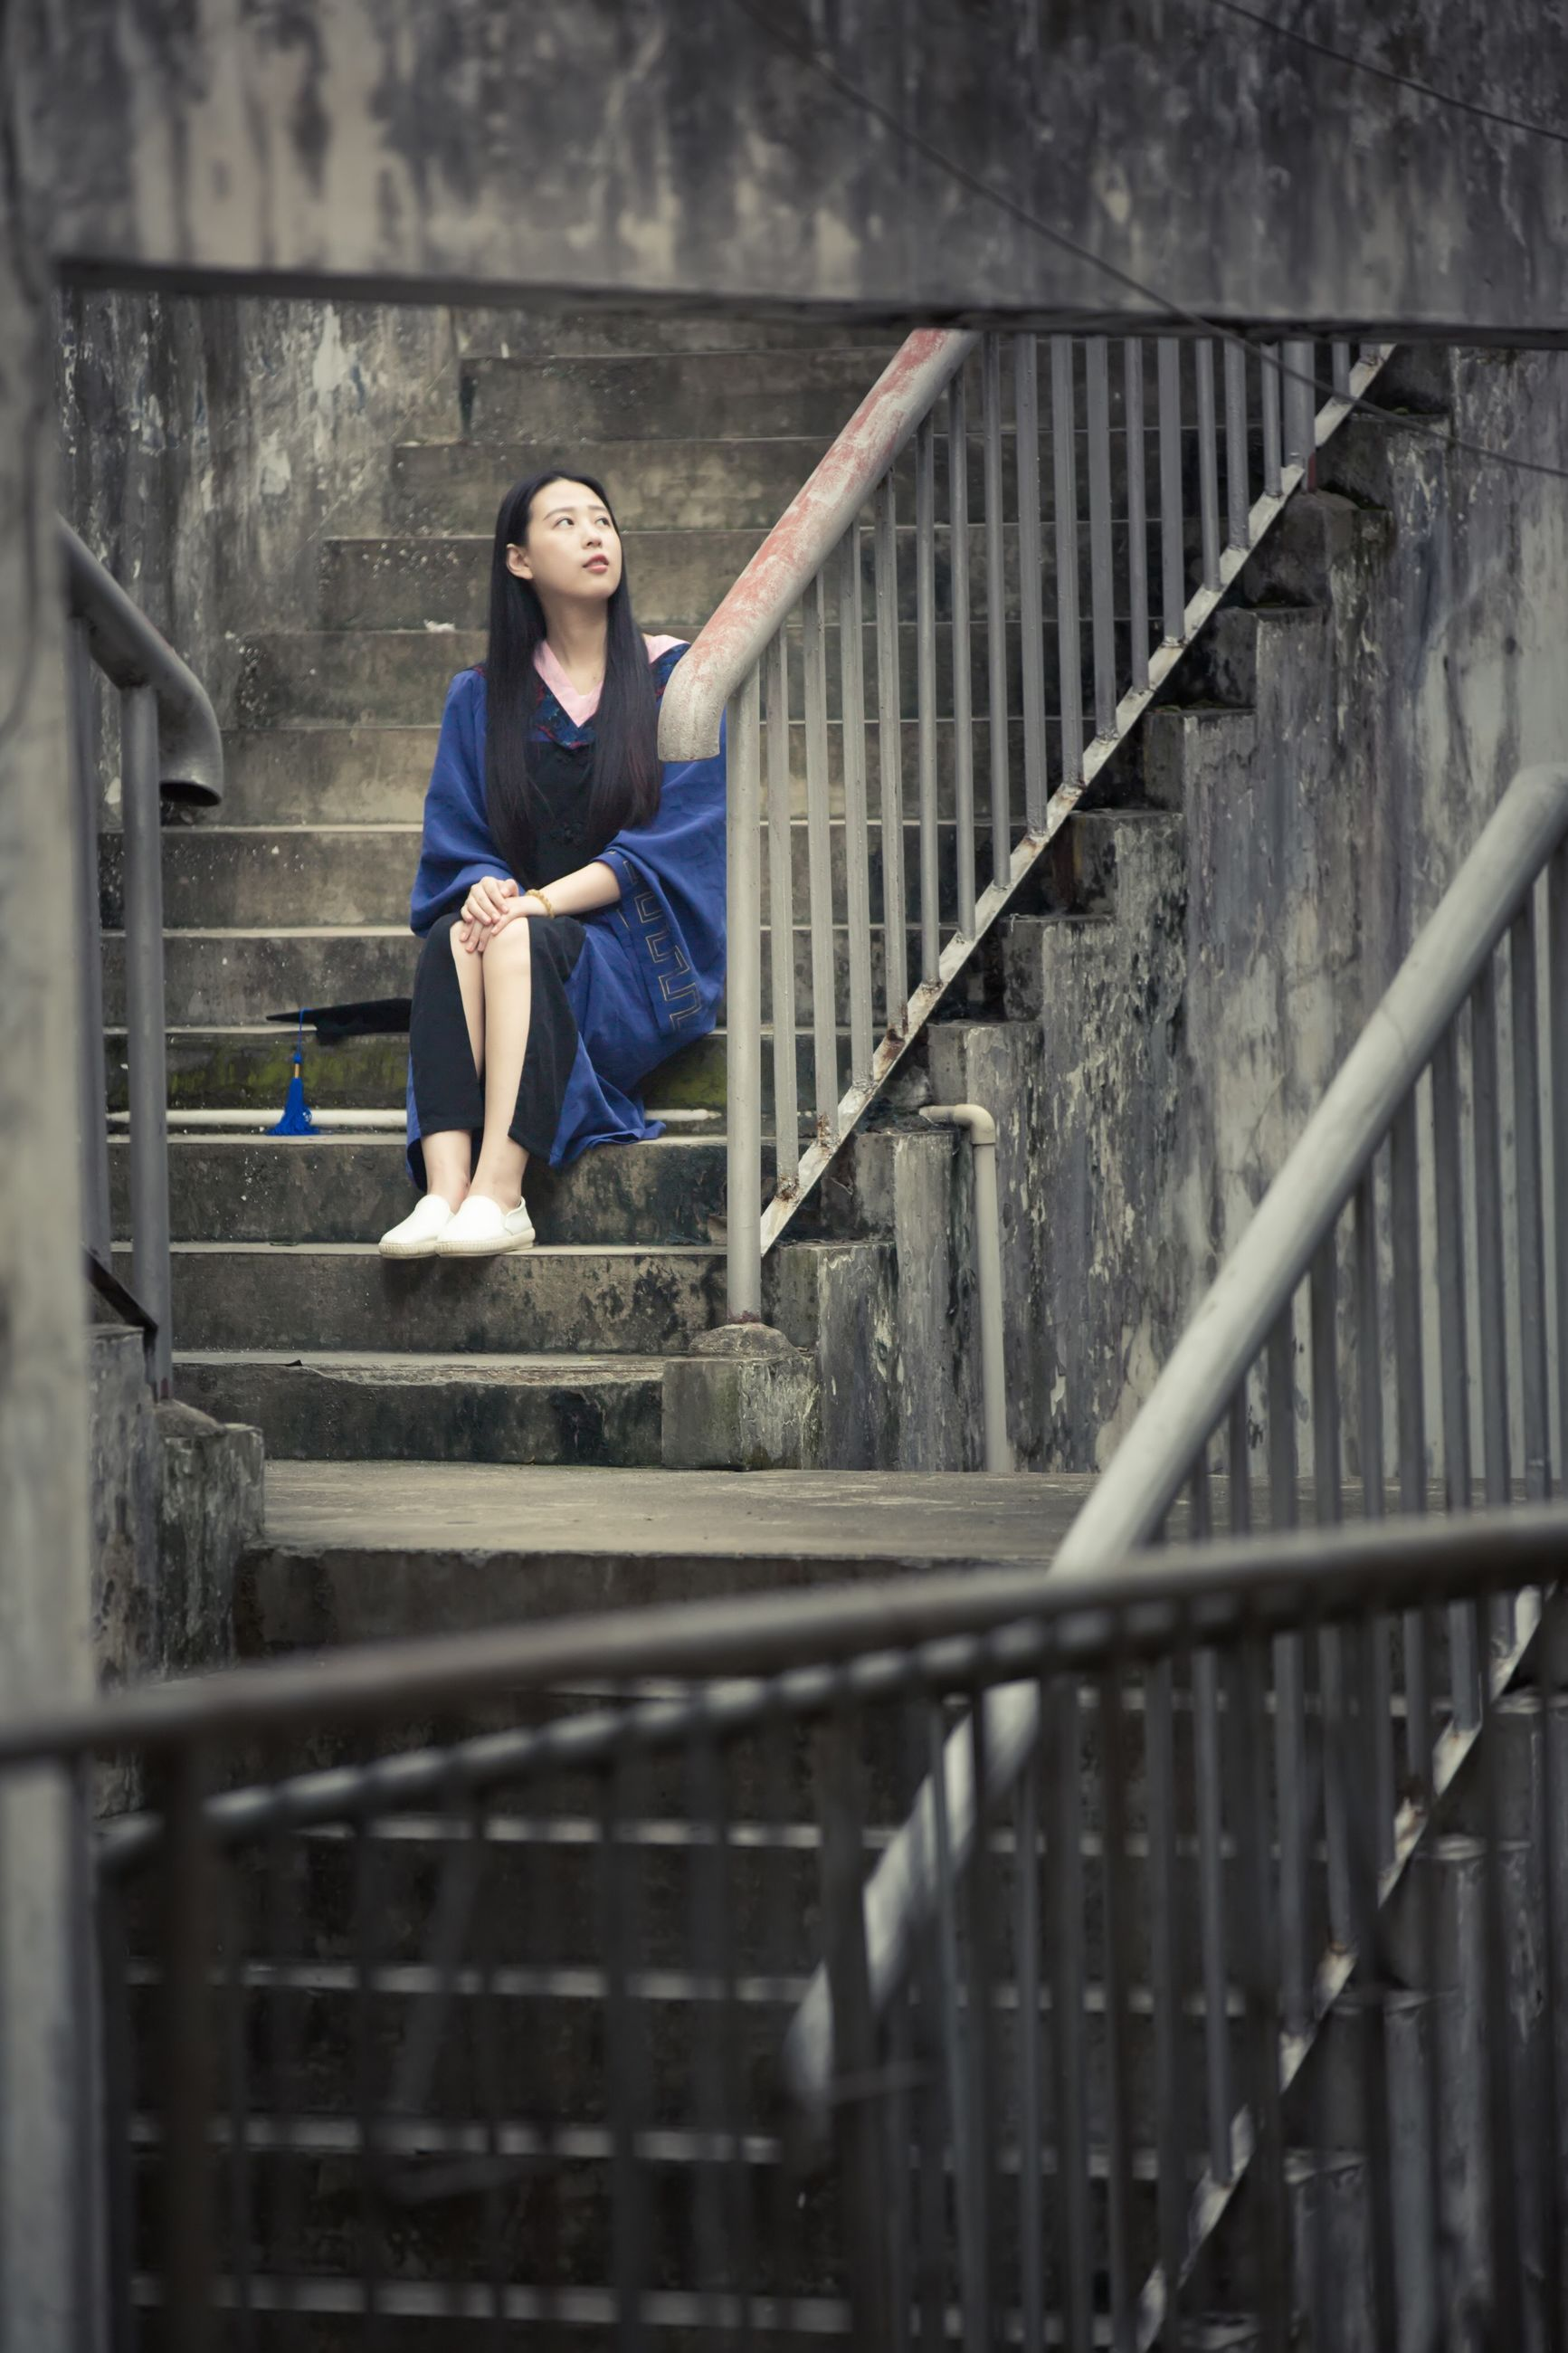 railing, casual clothing, lifestyles, full length, leisure activity, standing, portrait, day, outdoors, leaning, focus on foreground, stairs